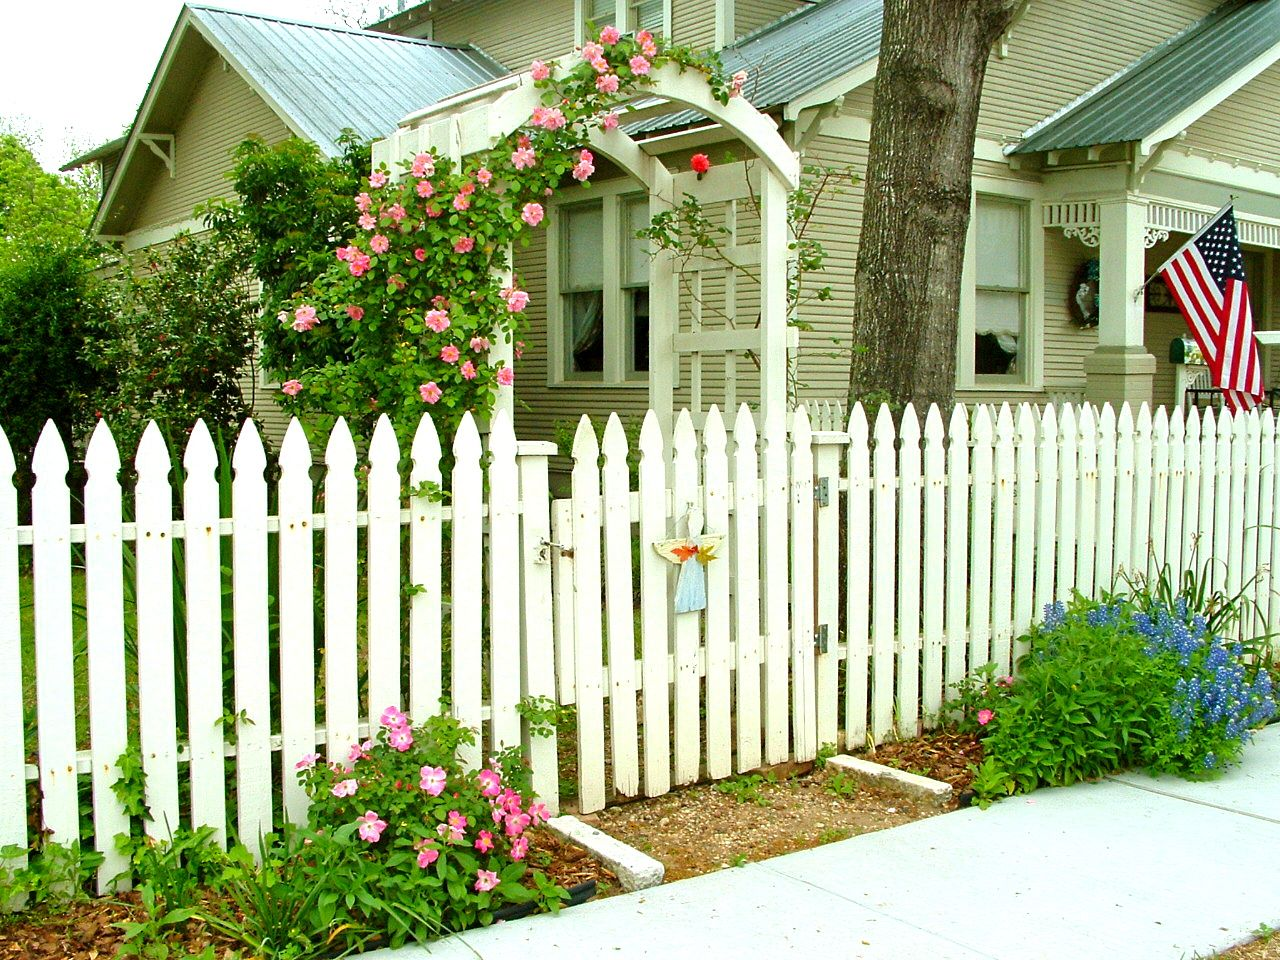 Picket Fence Is A Tinted White Color Then That Is The Color Used On The Fence Fence Design White Picket Fence Fence Gate Design